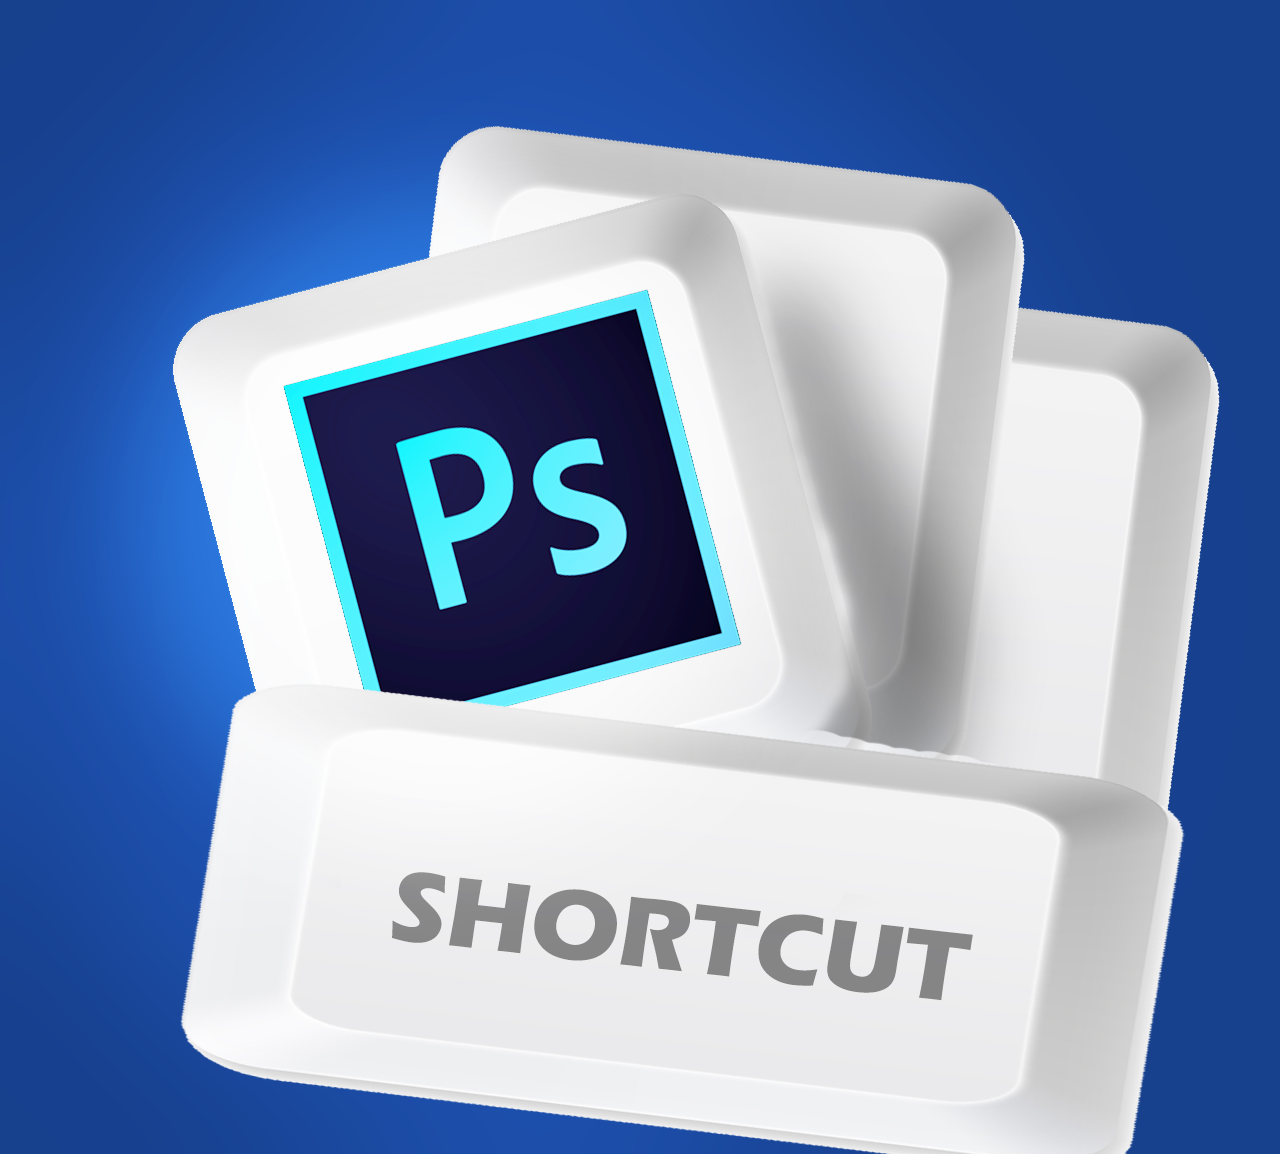 keyboard shortcut photoshop, ps